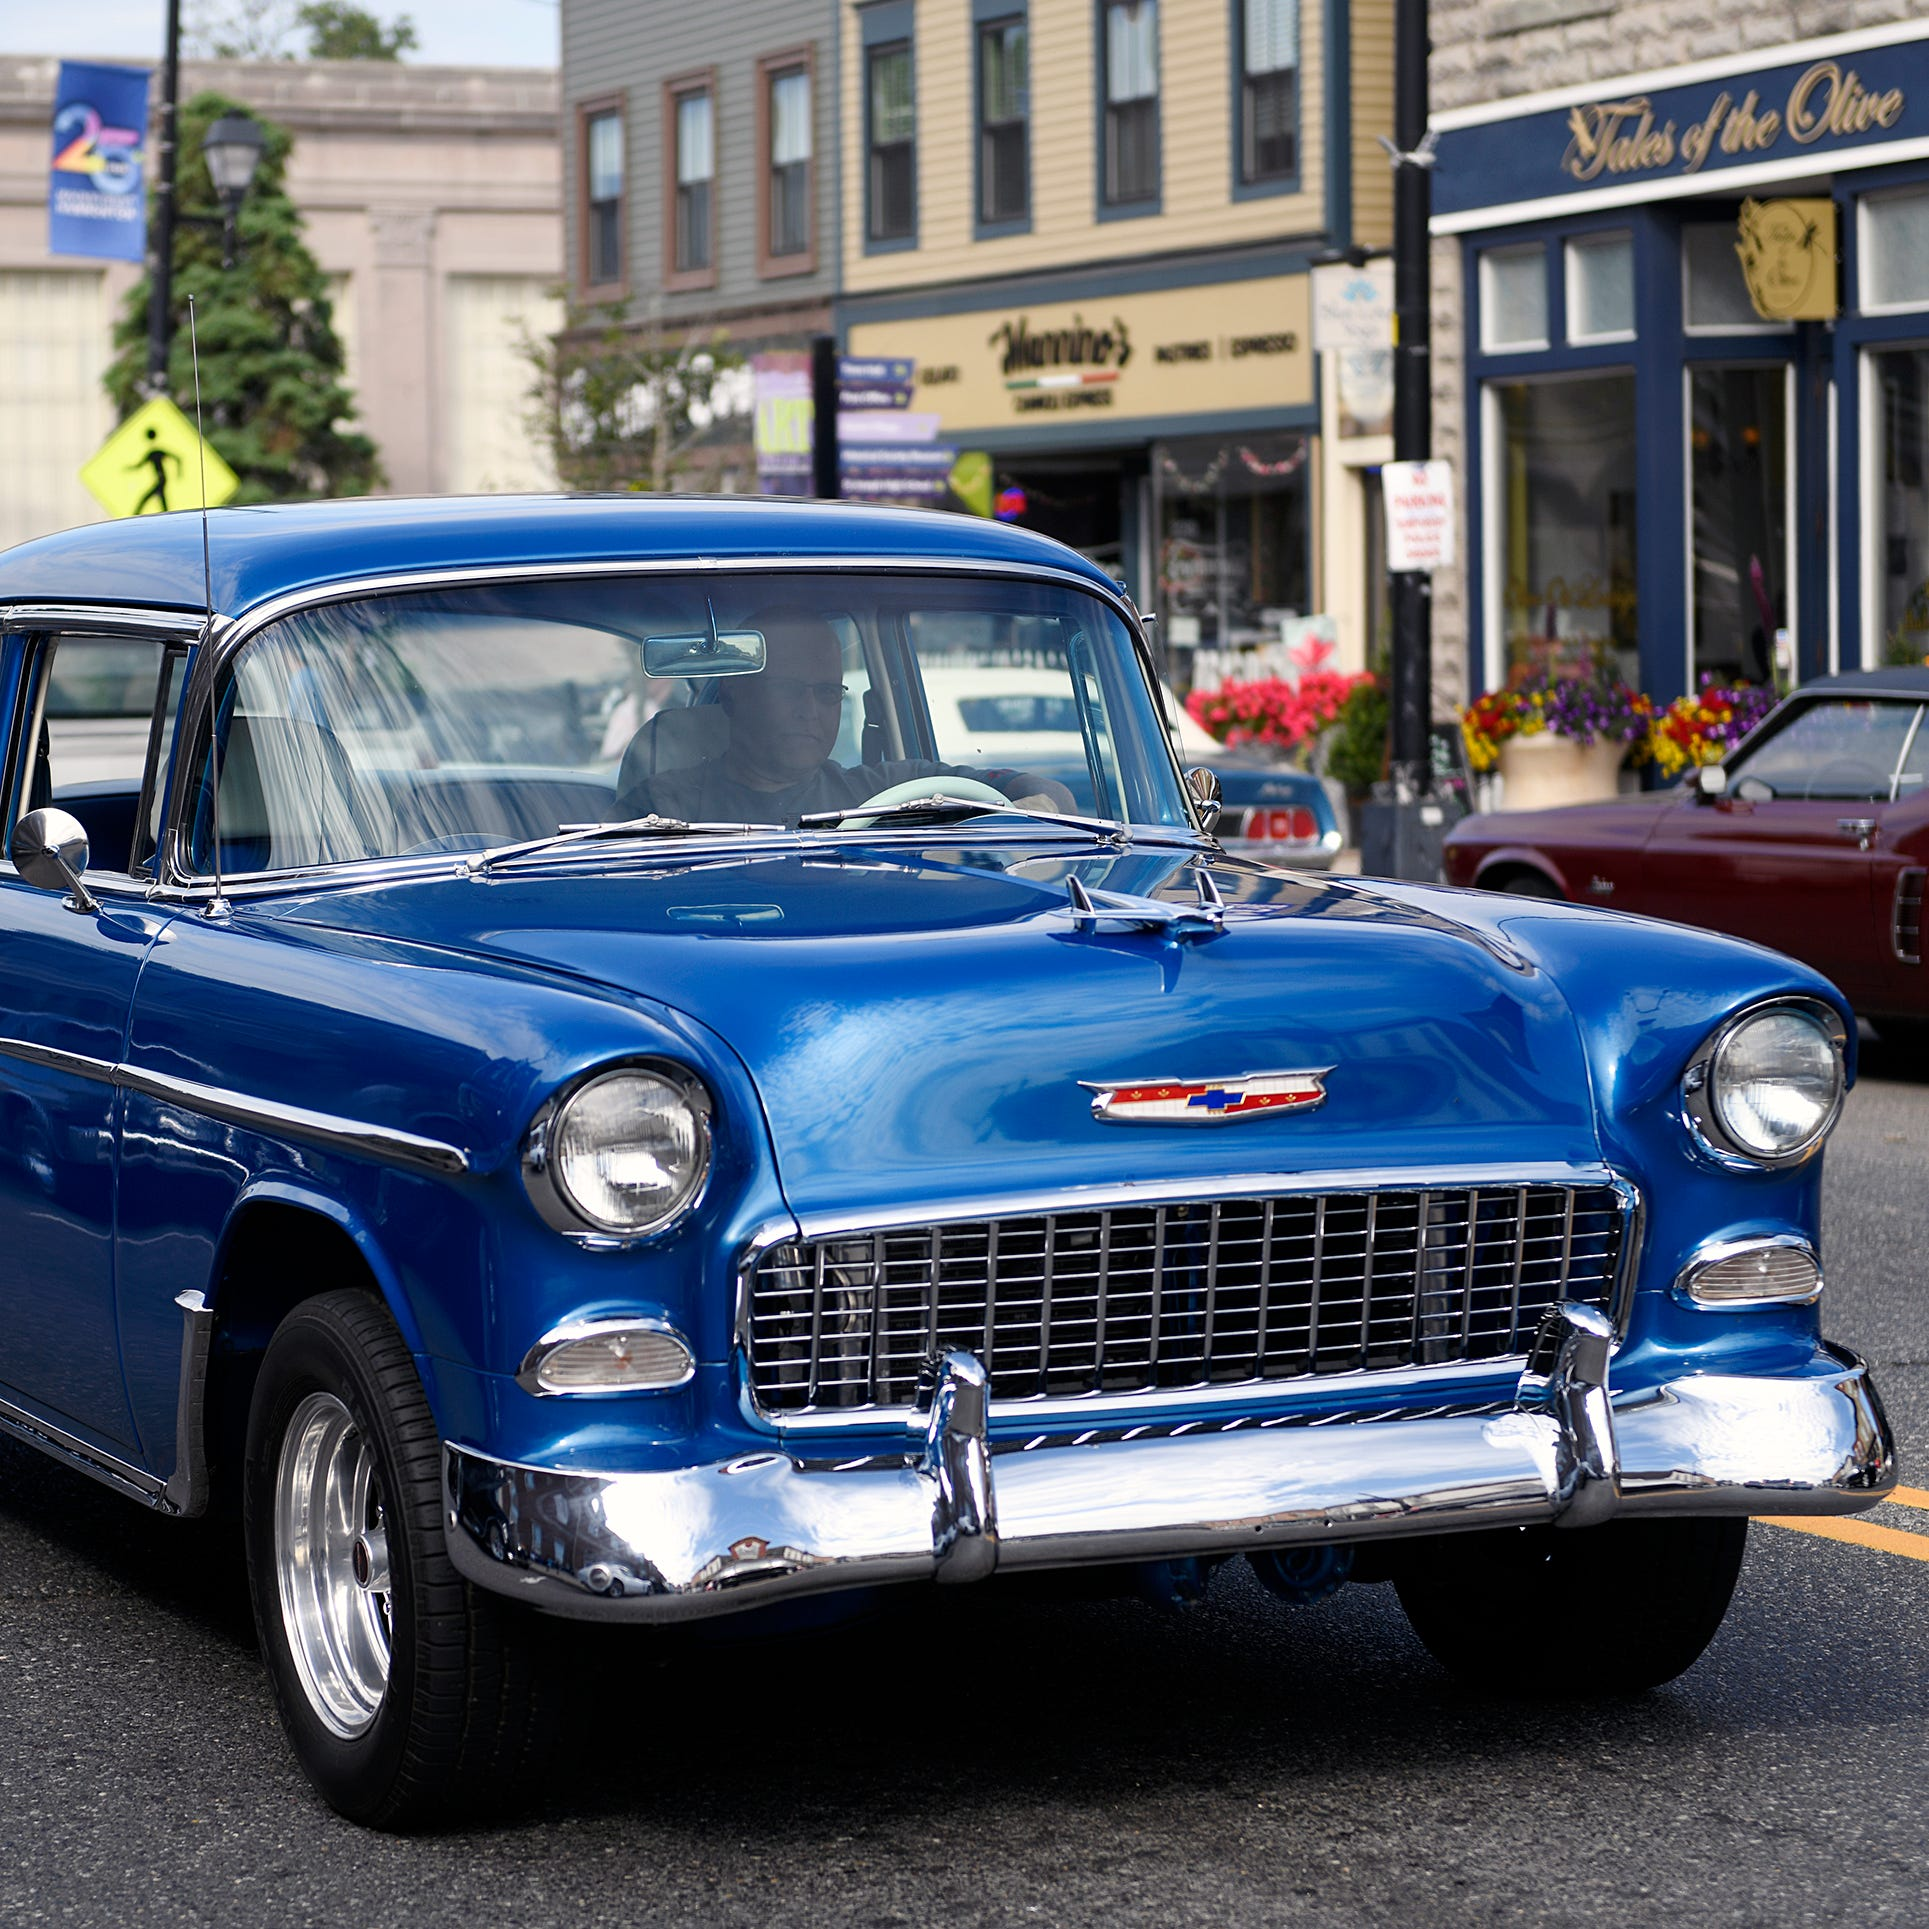 Classic cars shine during Cruisin' Main Street event